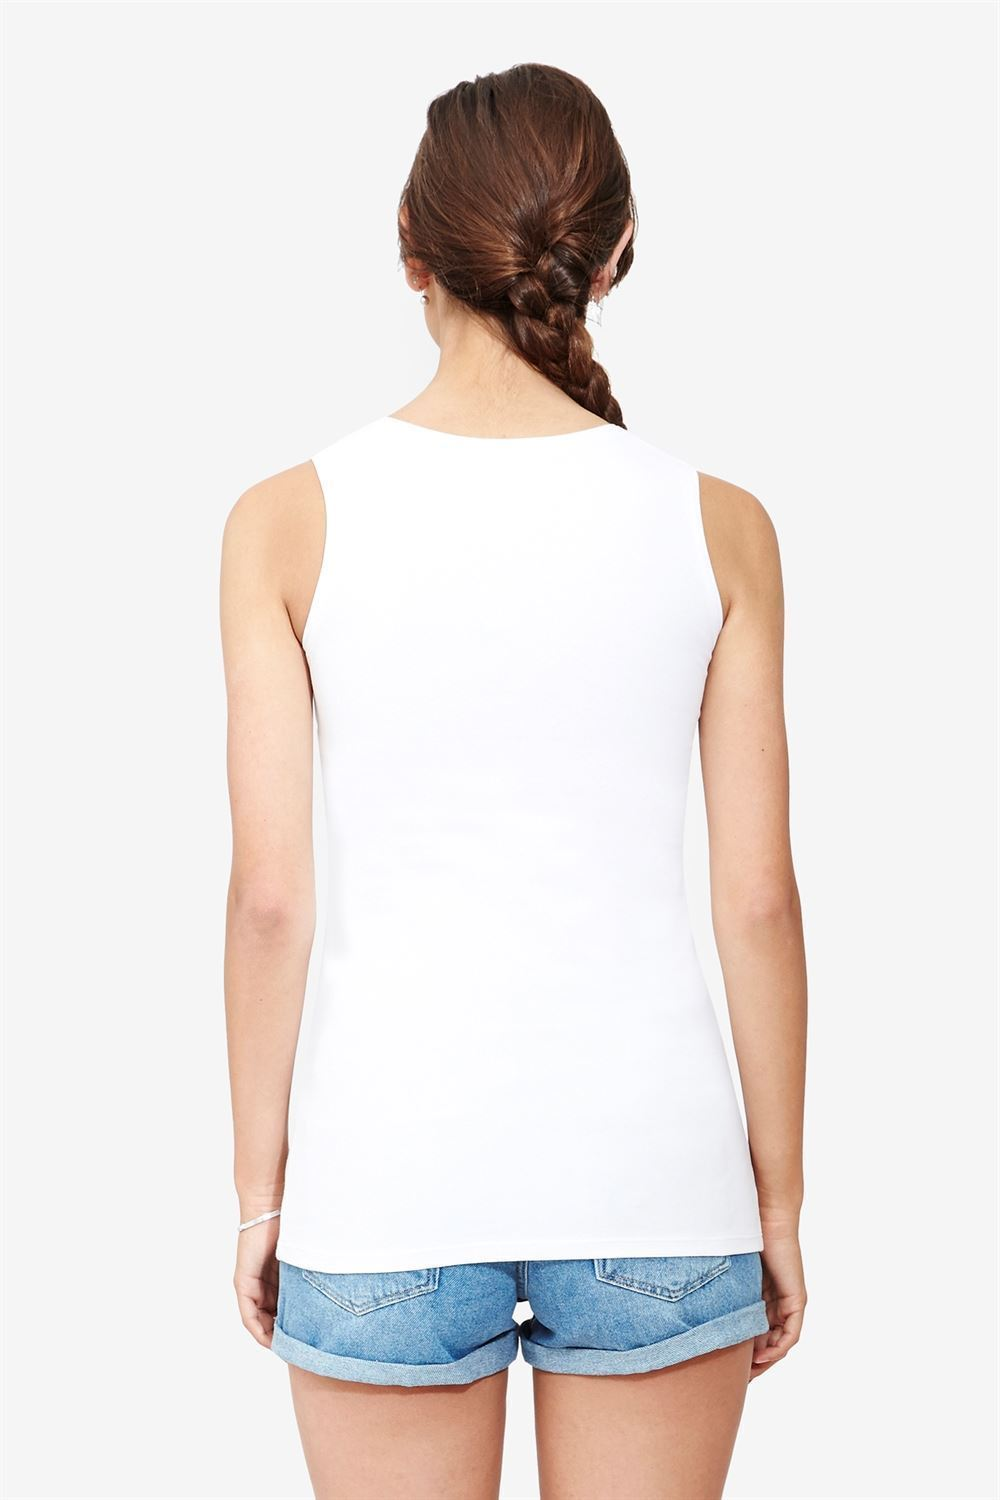 Classic white nursing top in simple design